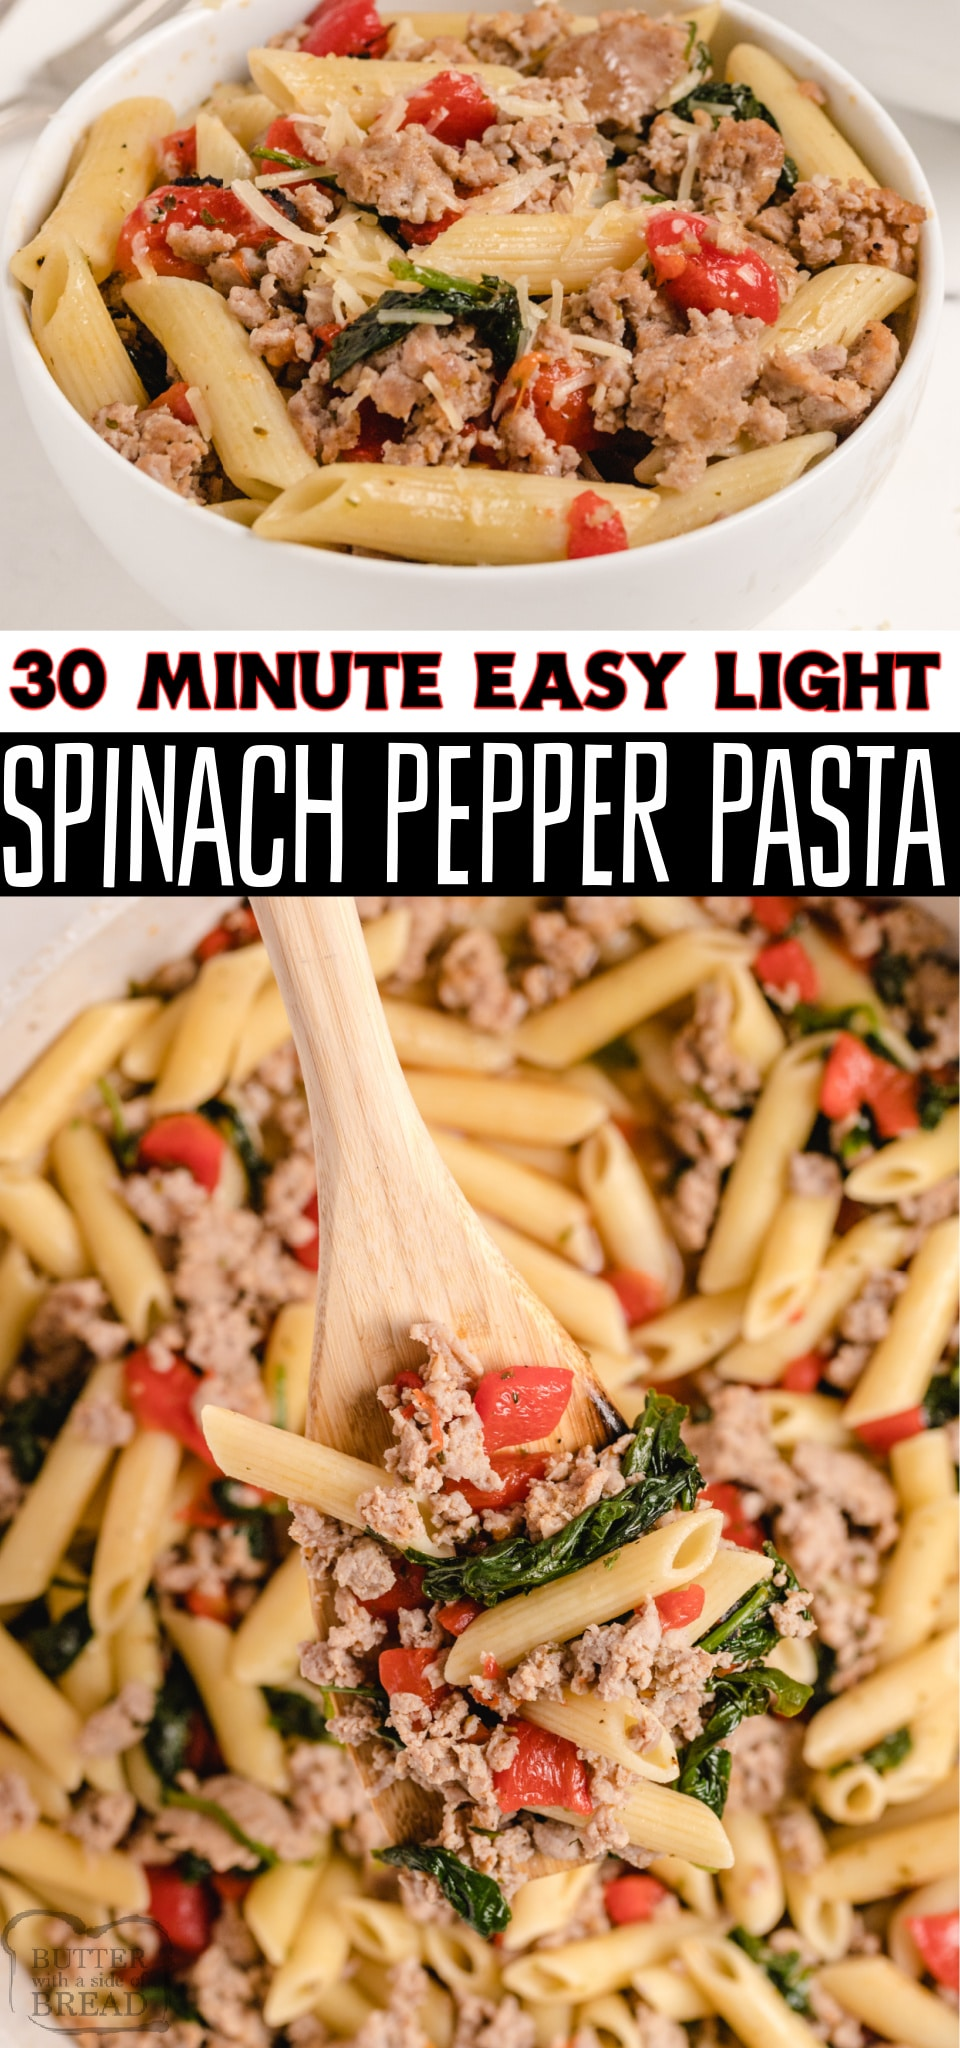 Light Spinach, Sausage & Pepper Pasta made easy in 30 minutes & so flavorful! Simple pasta recipe with turkey Italian sausage perfect for weeknight dinners. #pasta #light #lowcal #lowfat #healthy #dinner #easyrecipe from BUTTER WITH A SIDE OF BREAD